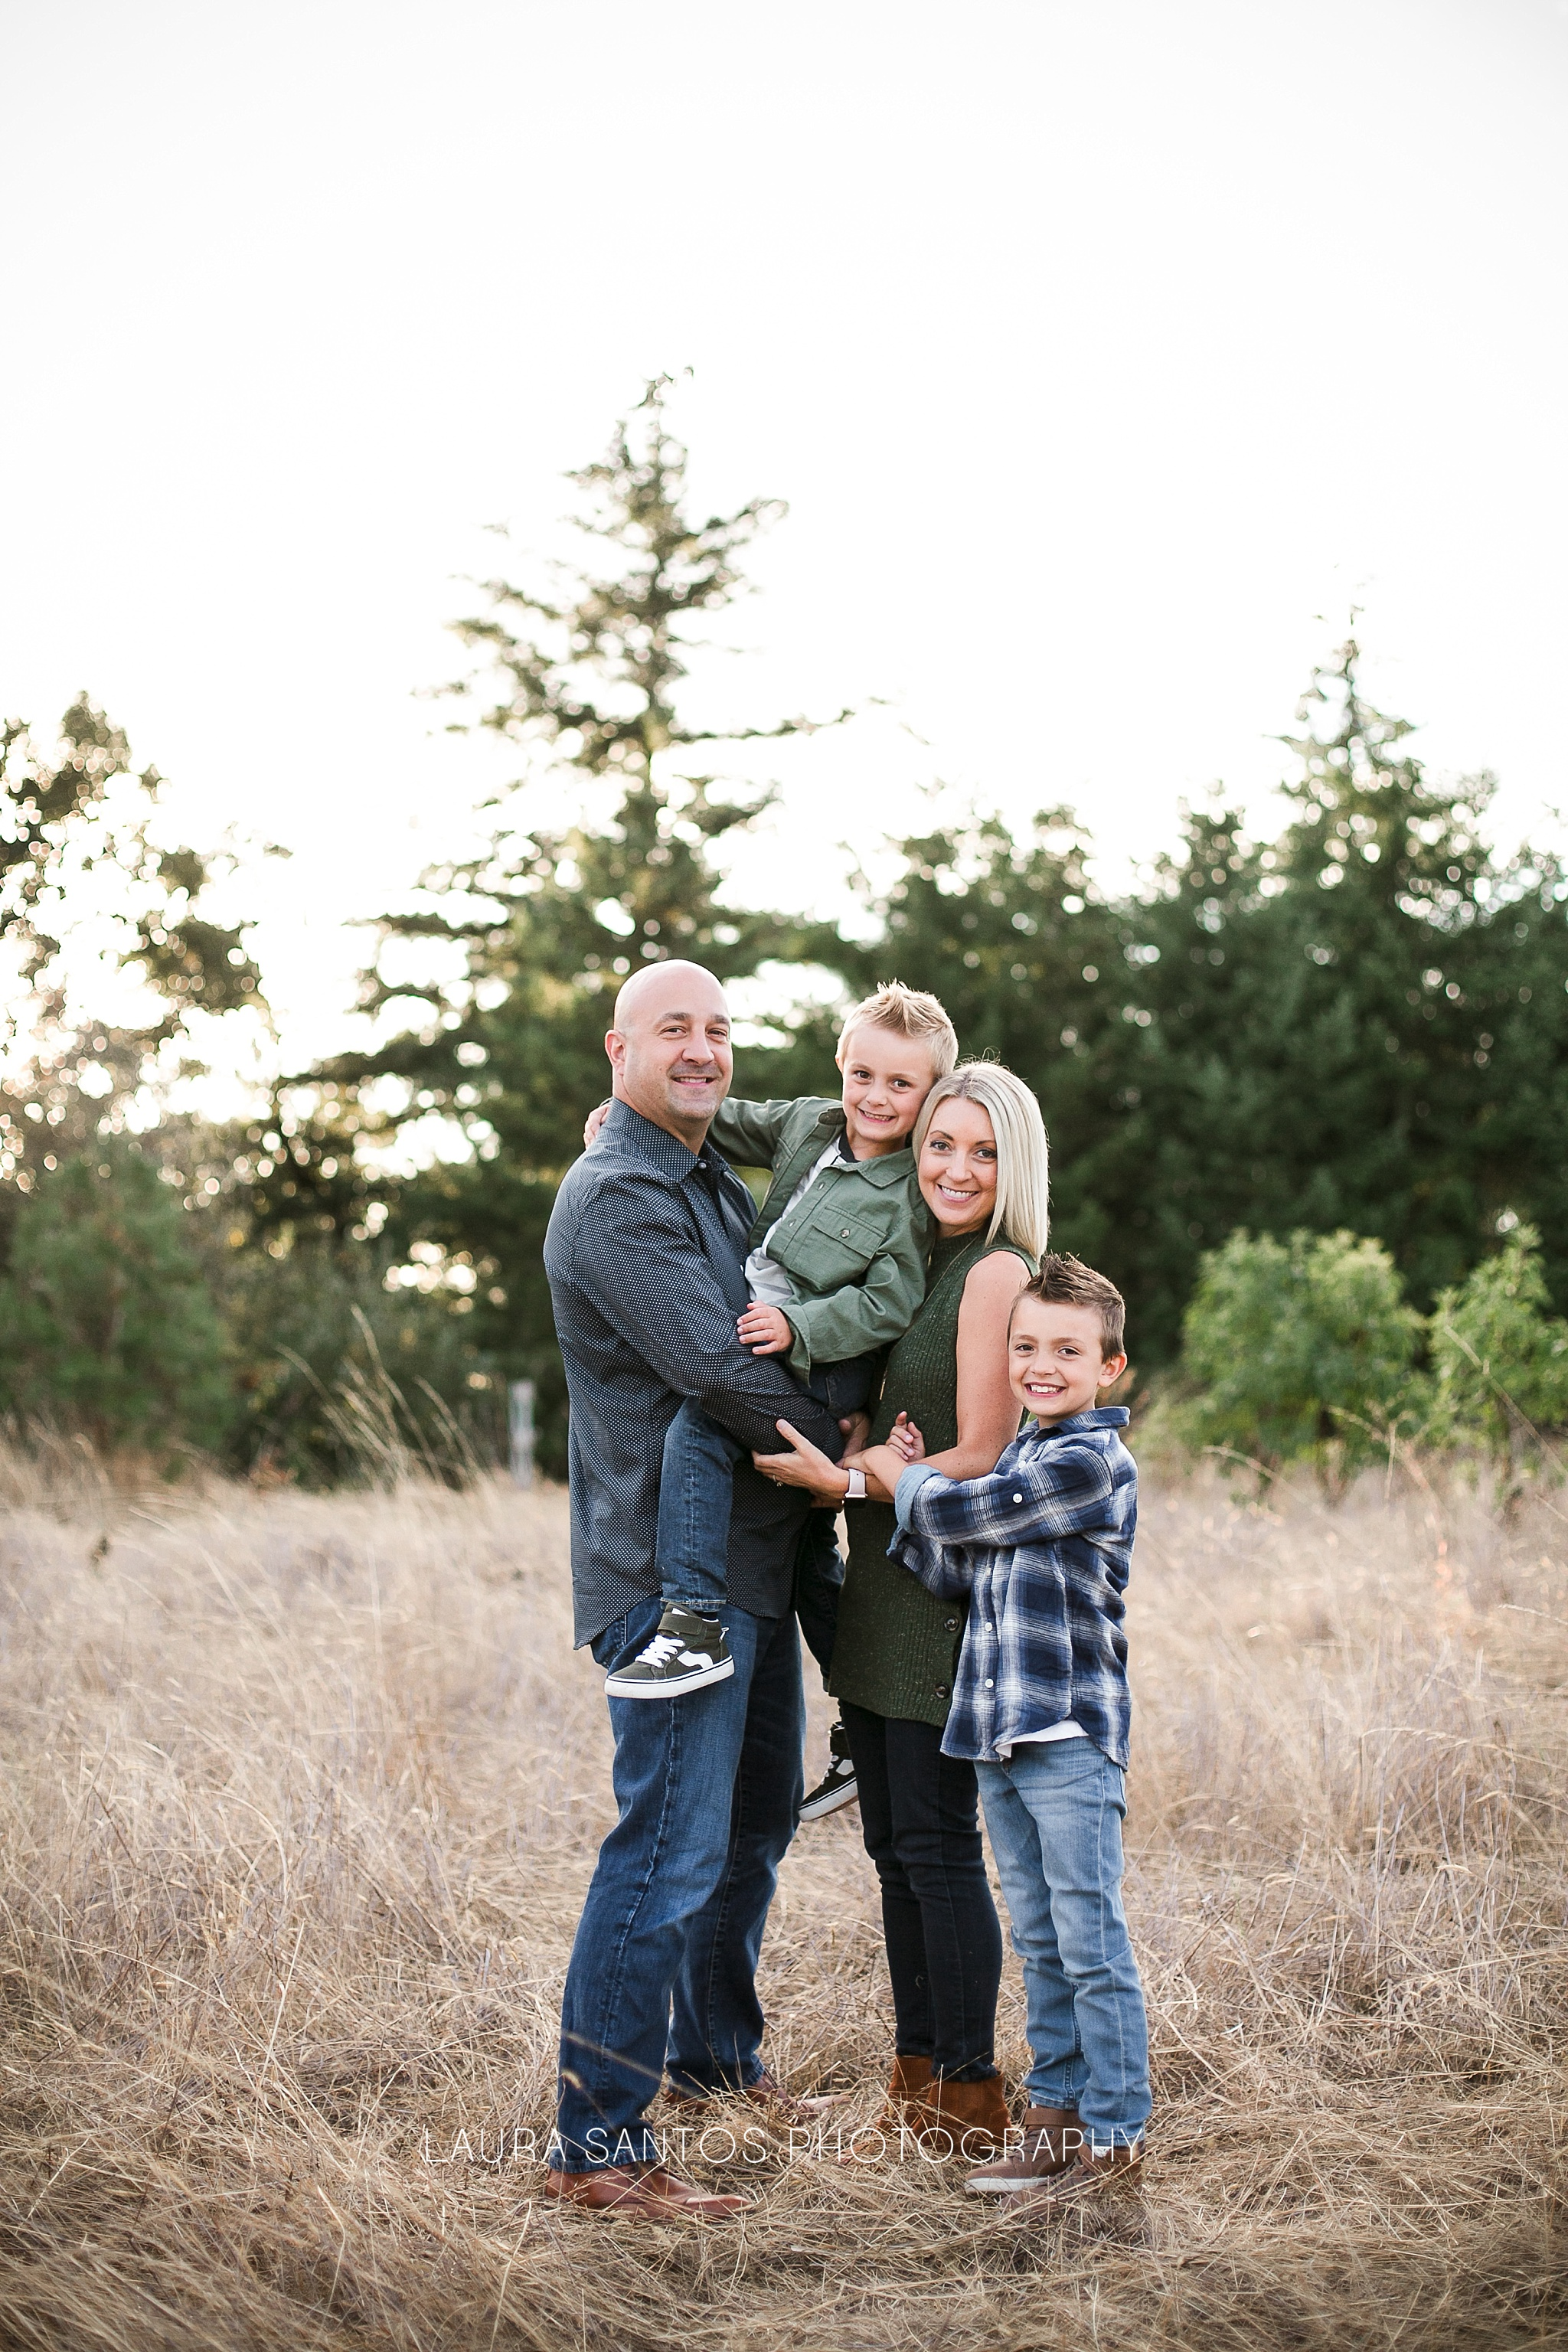 Laura Santos Photography Portland Oregon Family Photographer_0421.jpg